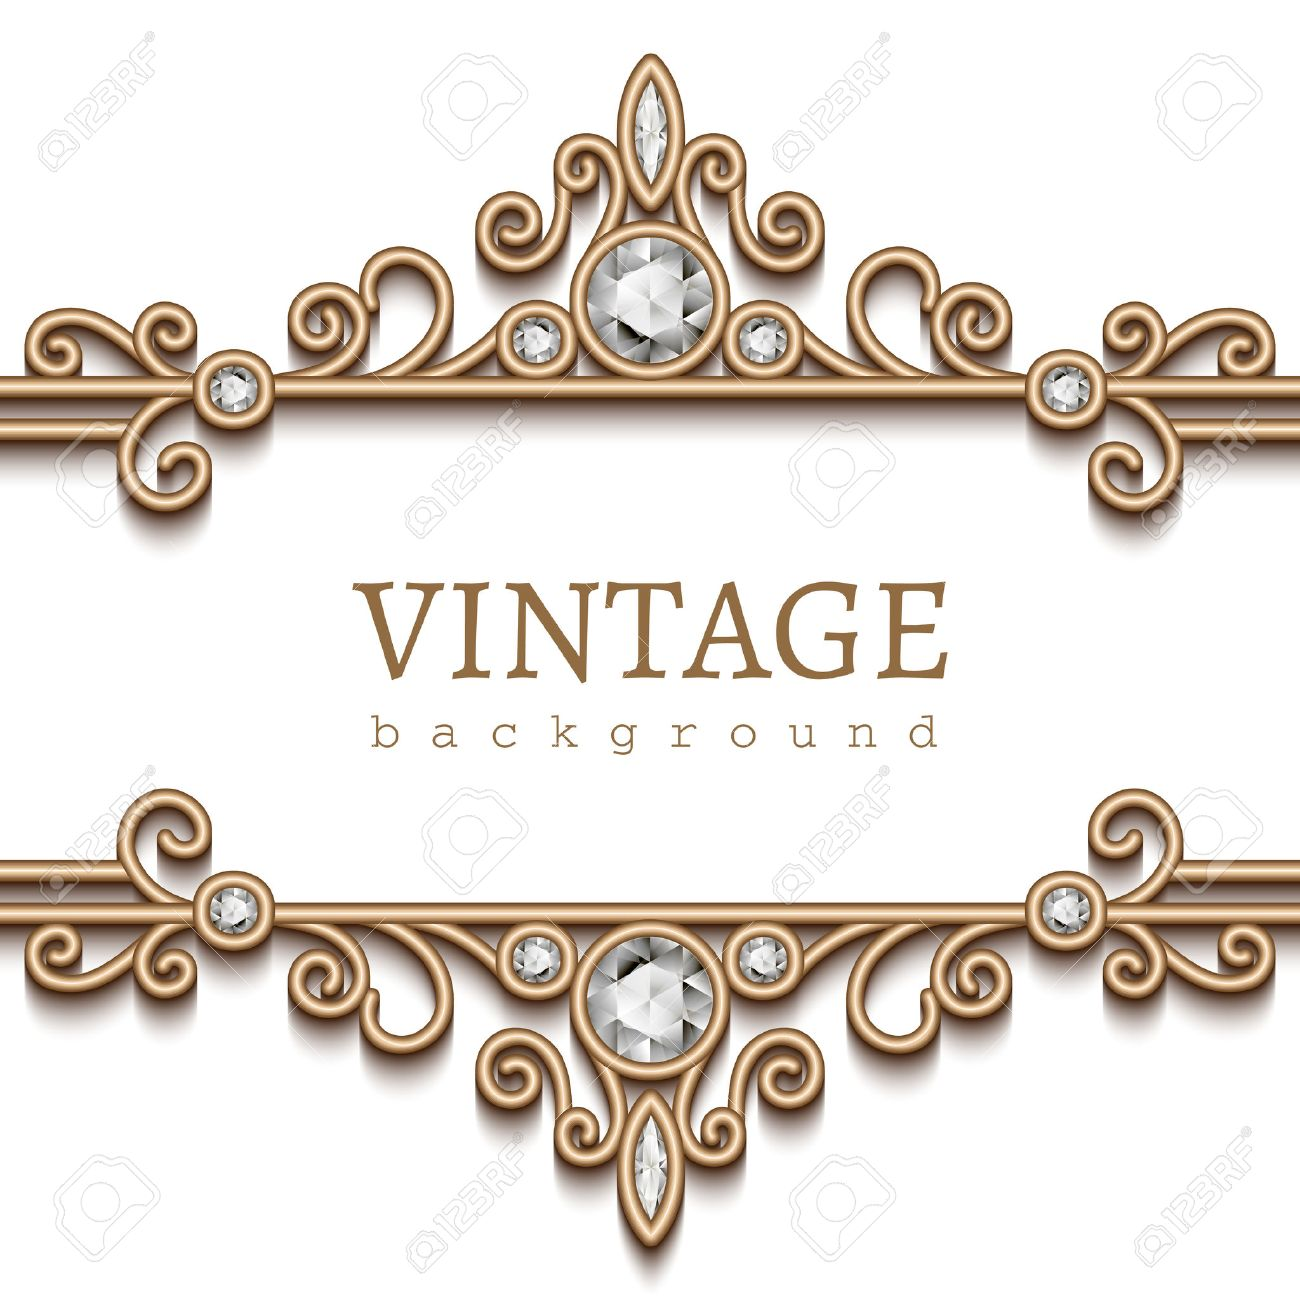 Vintage gold frame on white, divider, header, decorative jewelry background  Stock Vector -